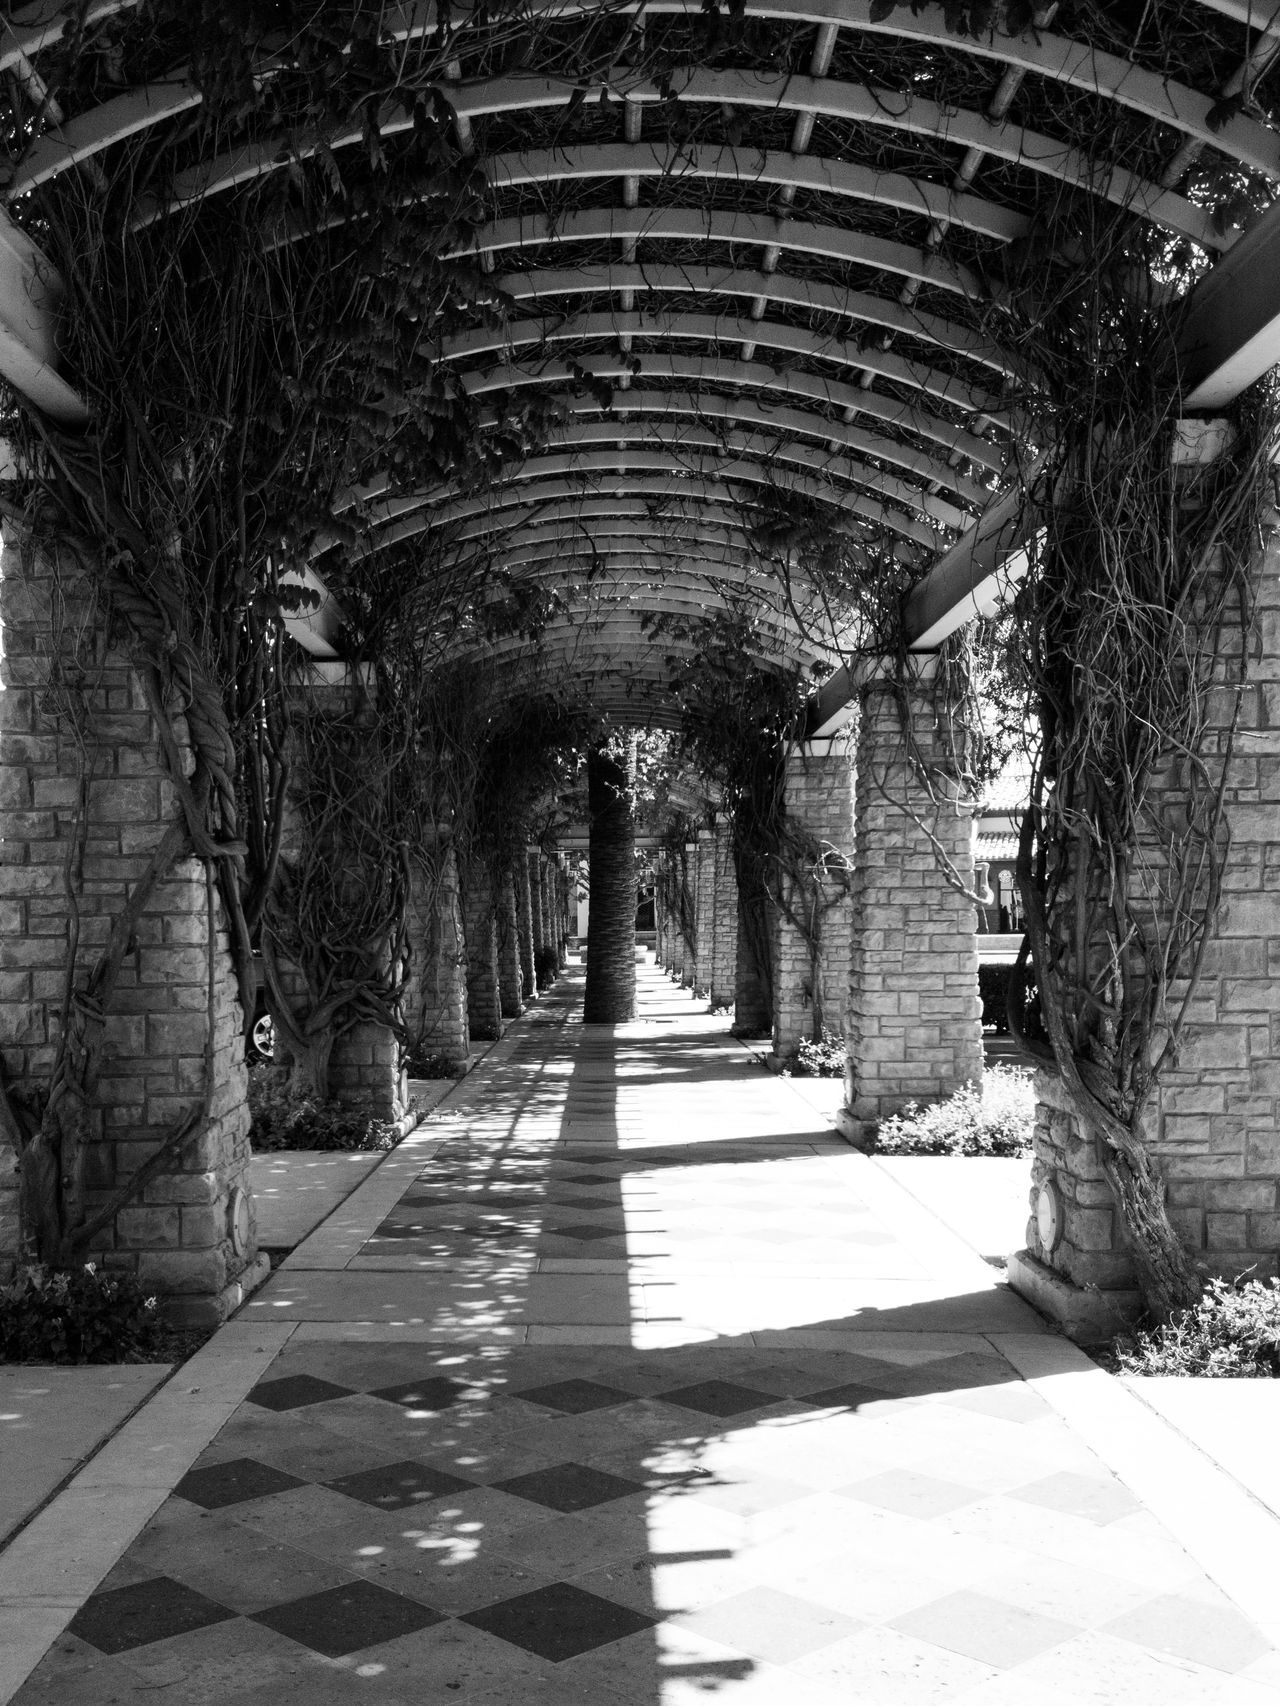 The Way Forward Day Indoors  Built Structure Architecture No People Black And White Monochrome